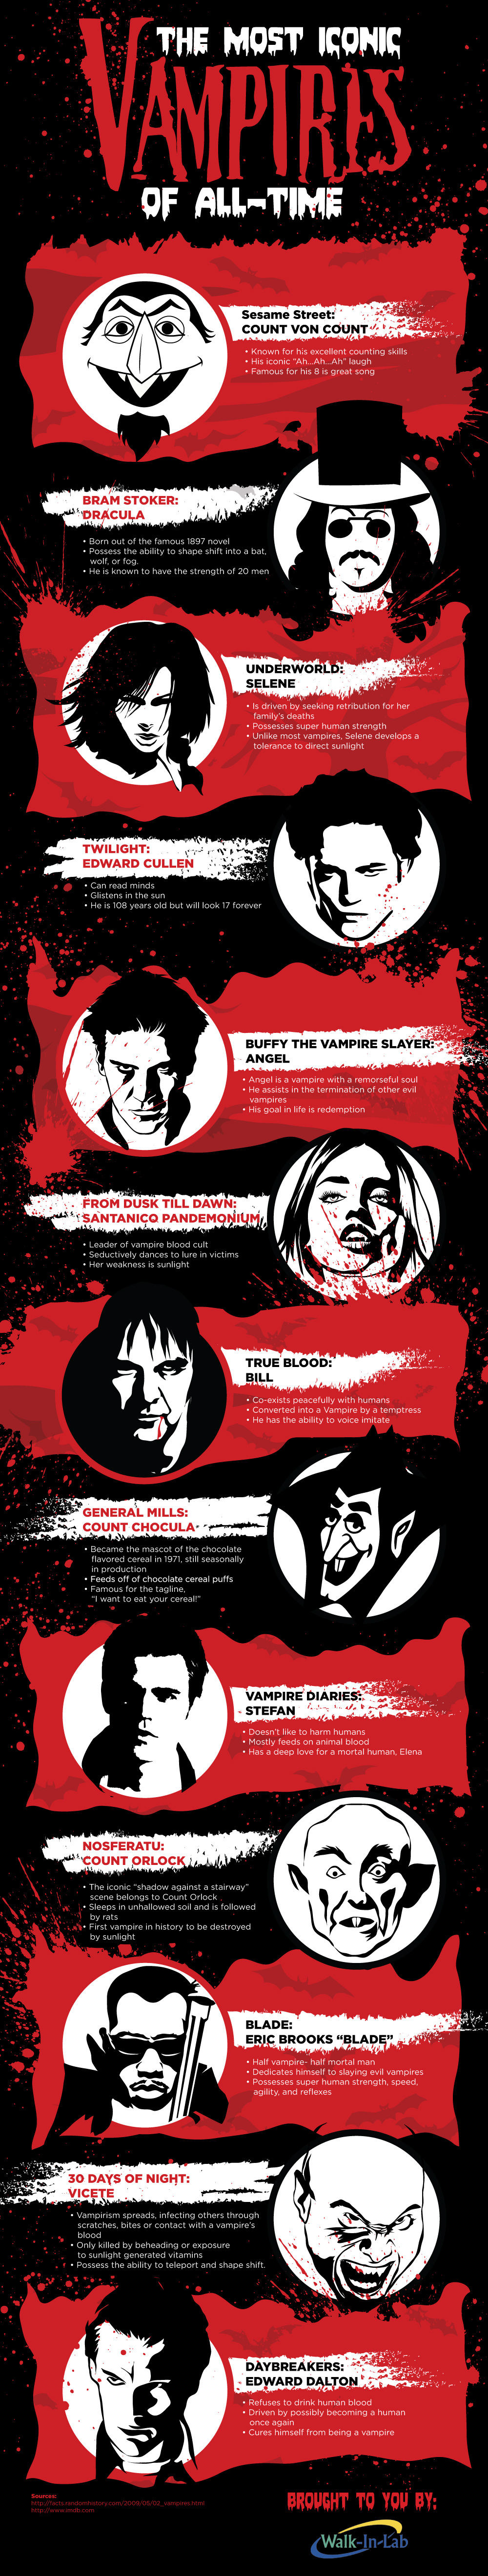 The Most Iconic Vampires of All-time